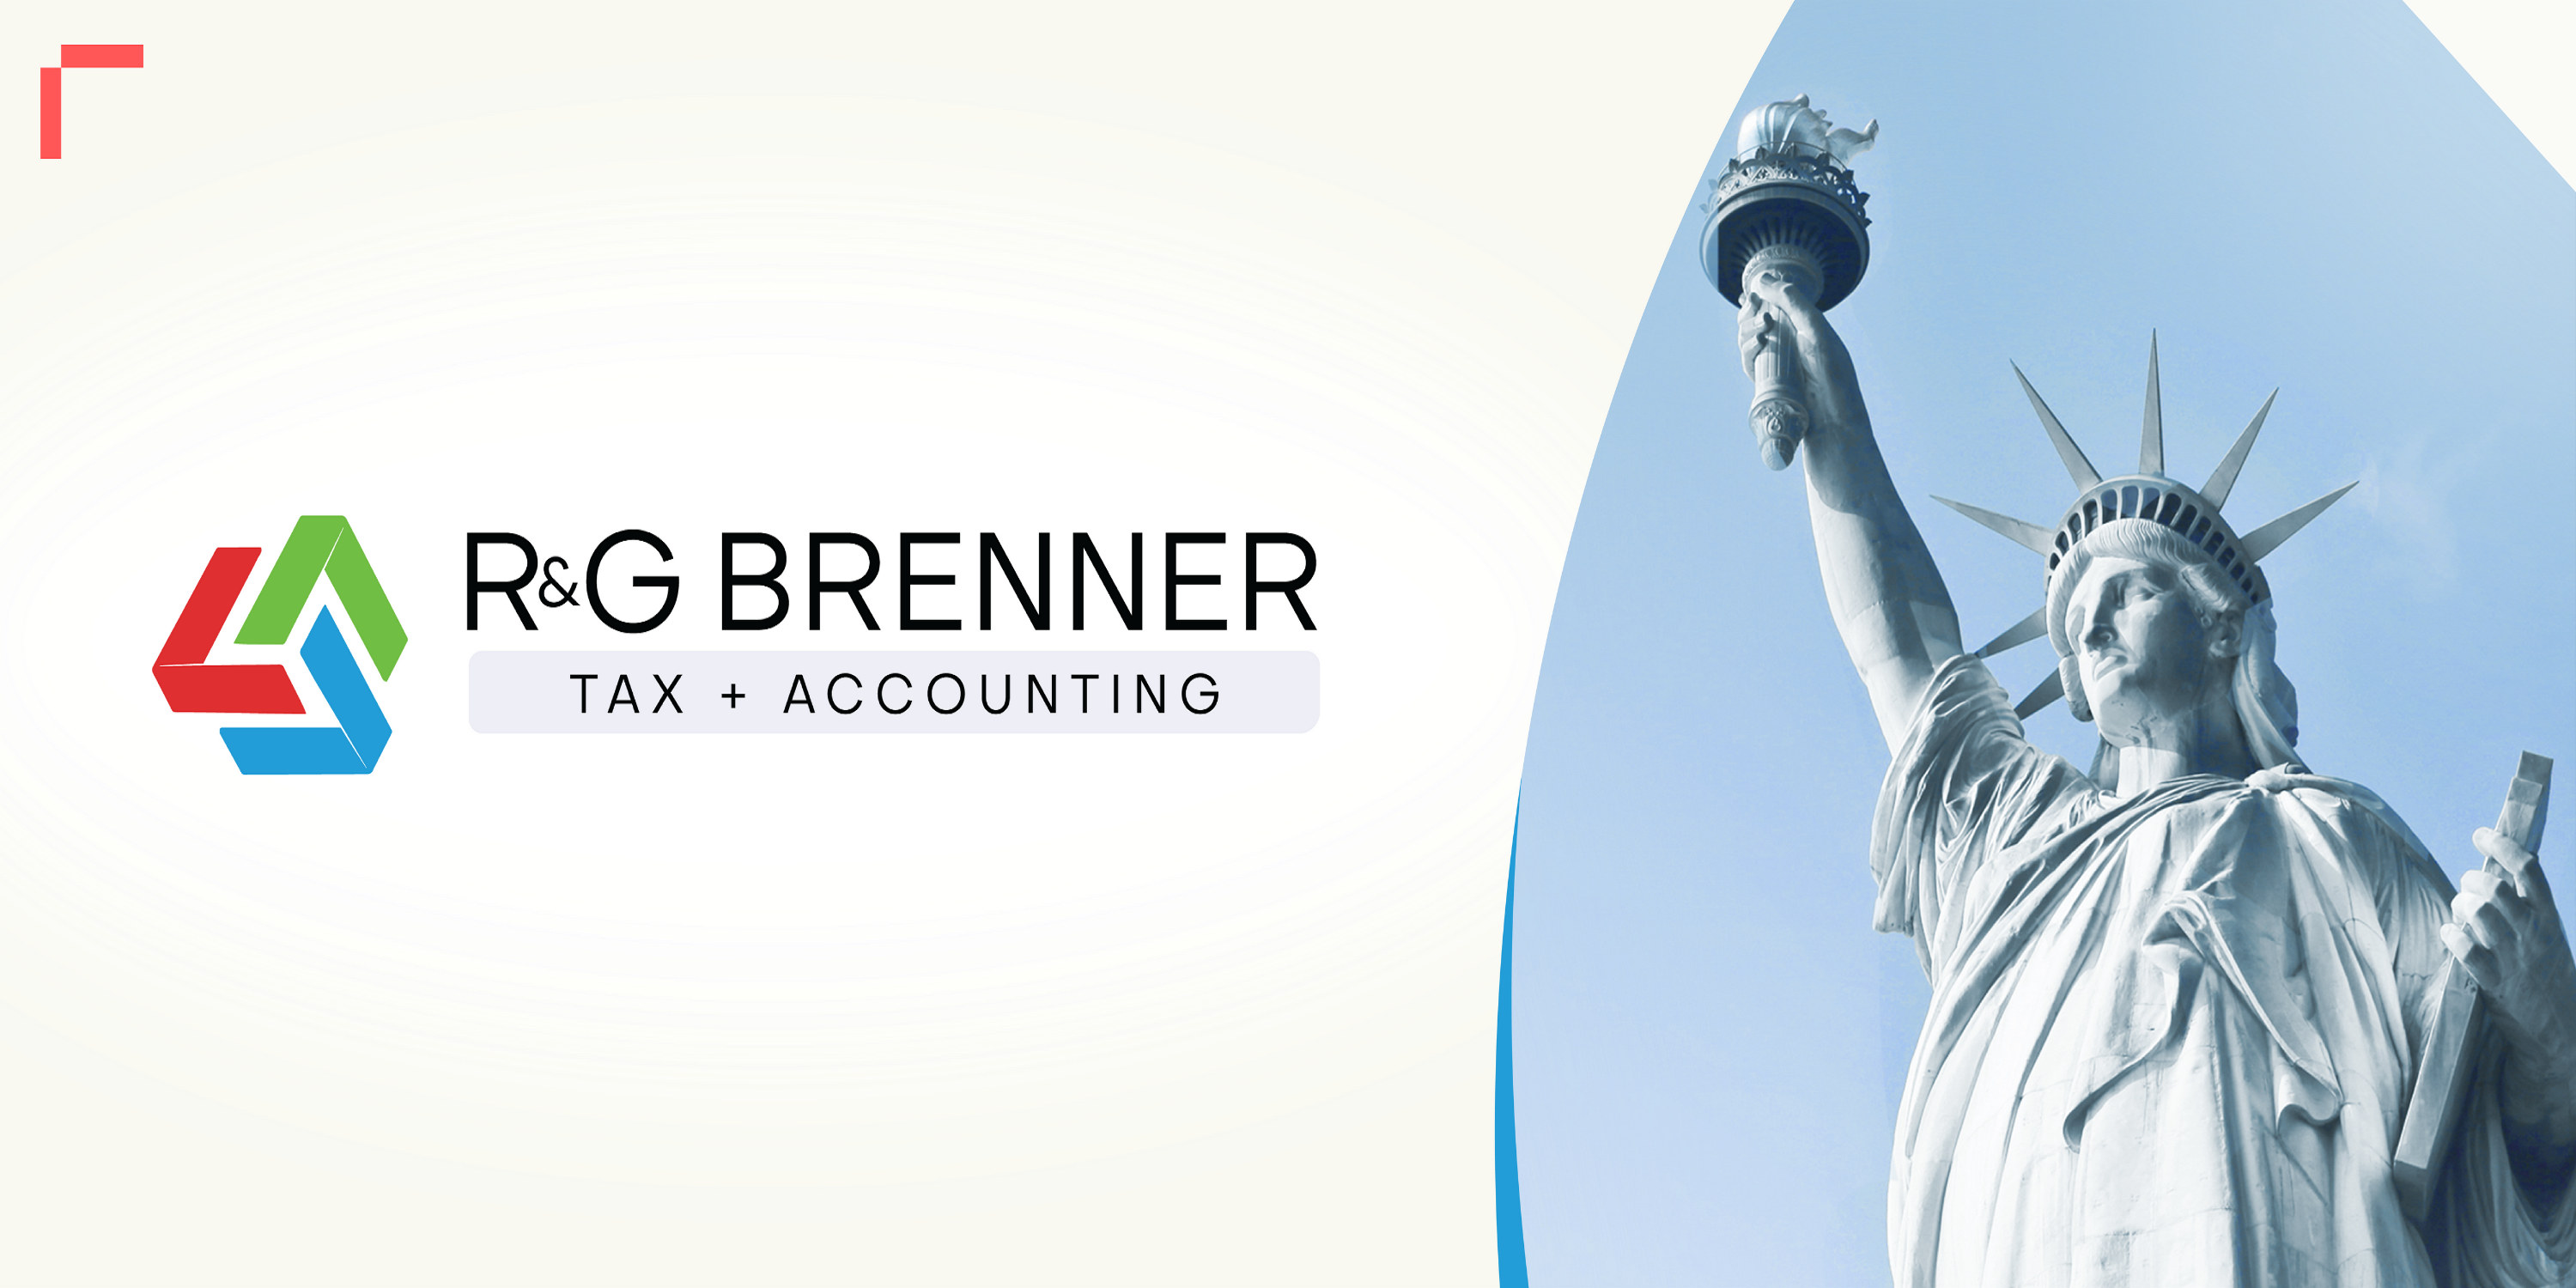 Image of the Statue of Liberty. To the left of the image is the logo of R&G Brenner.